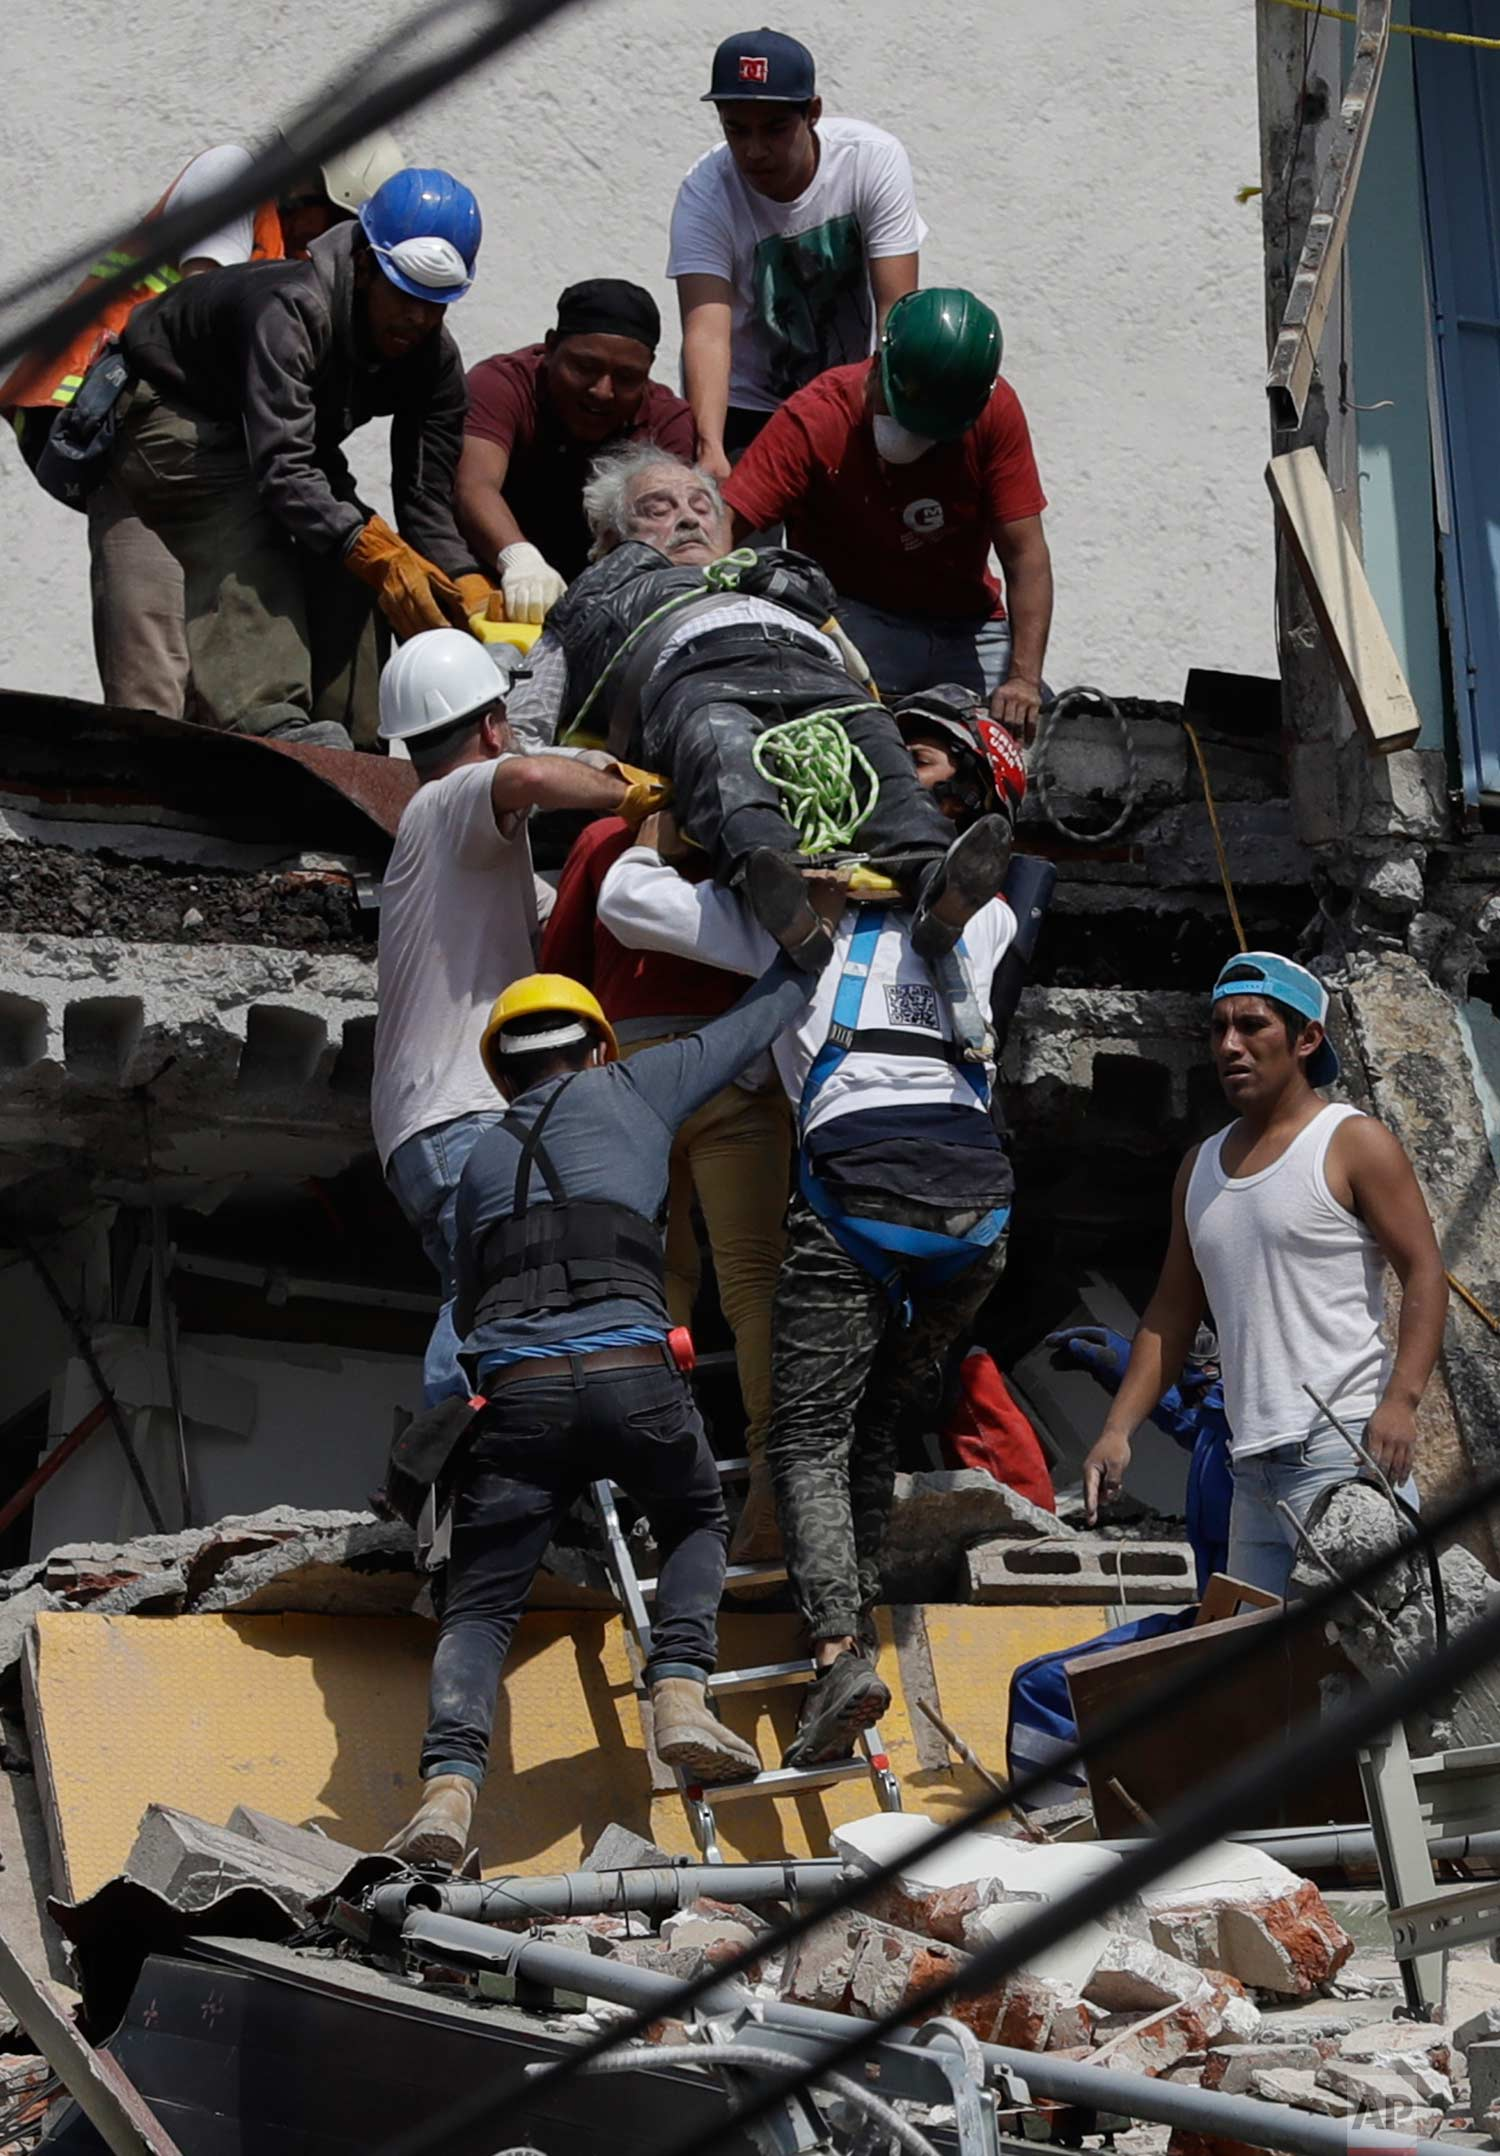 In this Sept. 19, 2017 photo, an injured man is pulled out of a building that collapsed during an earthquake in the Roma Norte neighborhood of Mexico City. (AP Photo/Rebecca Blackwell)